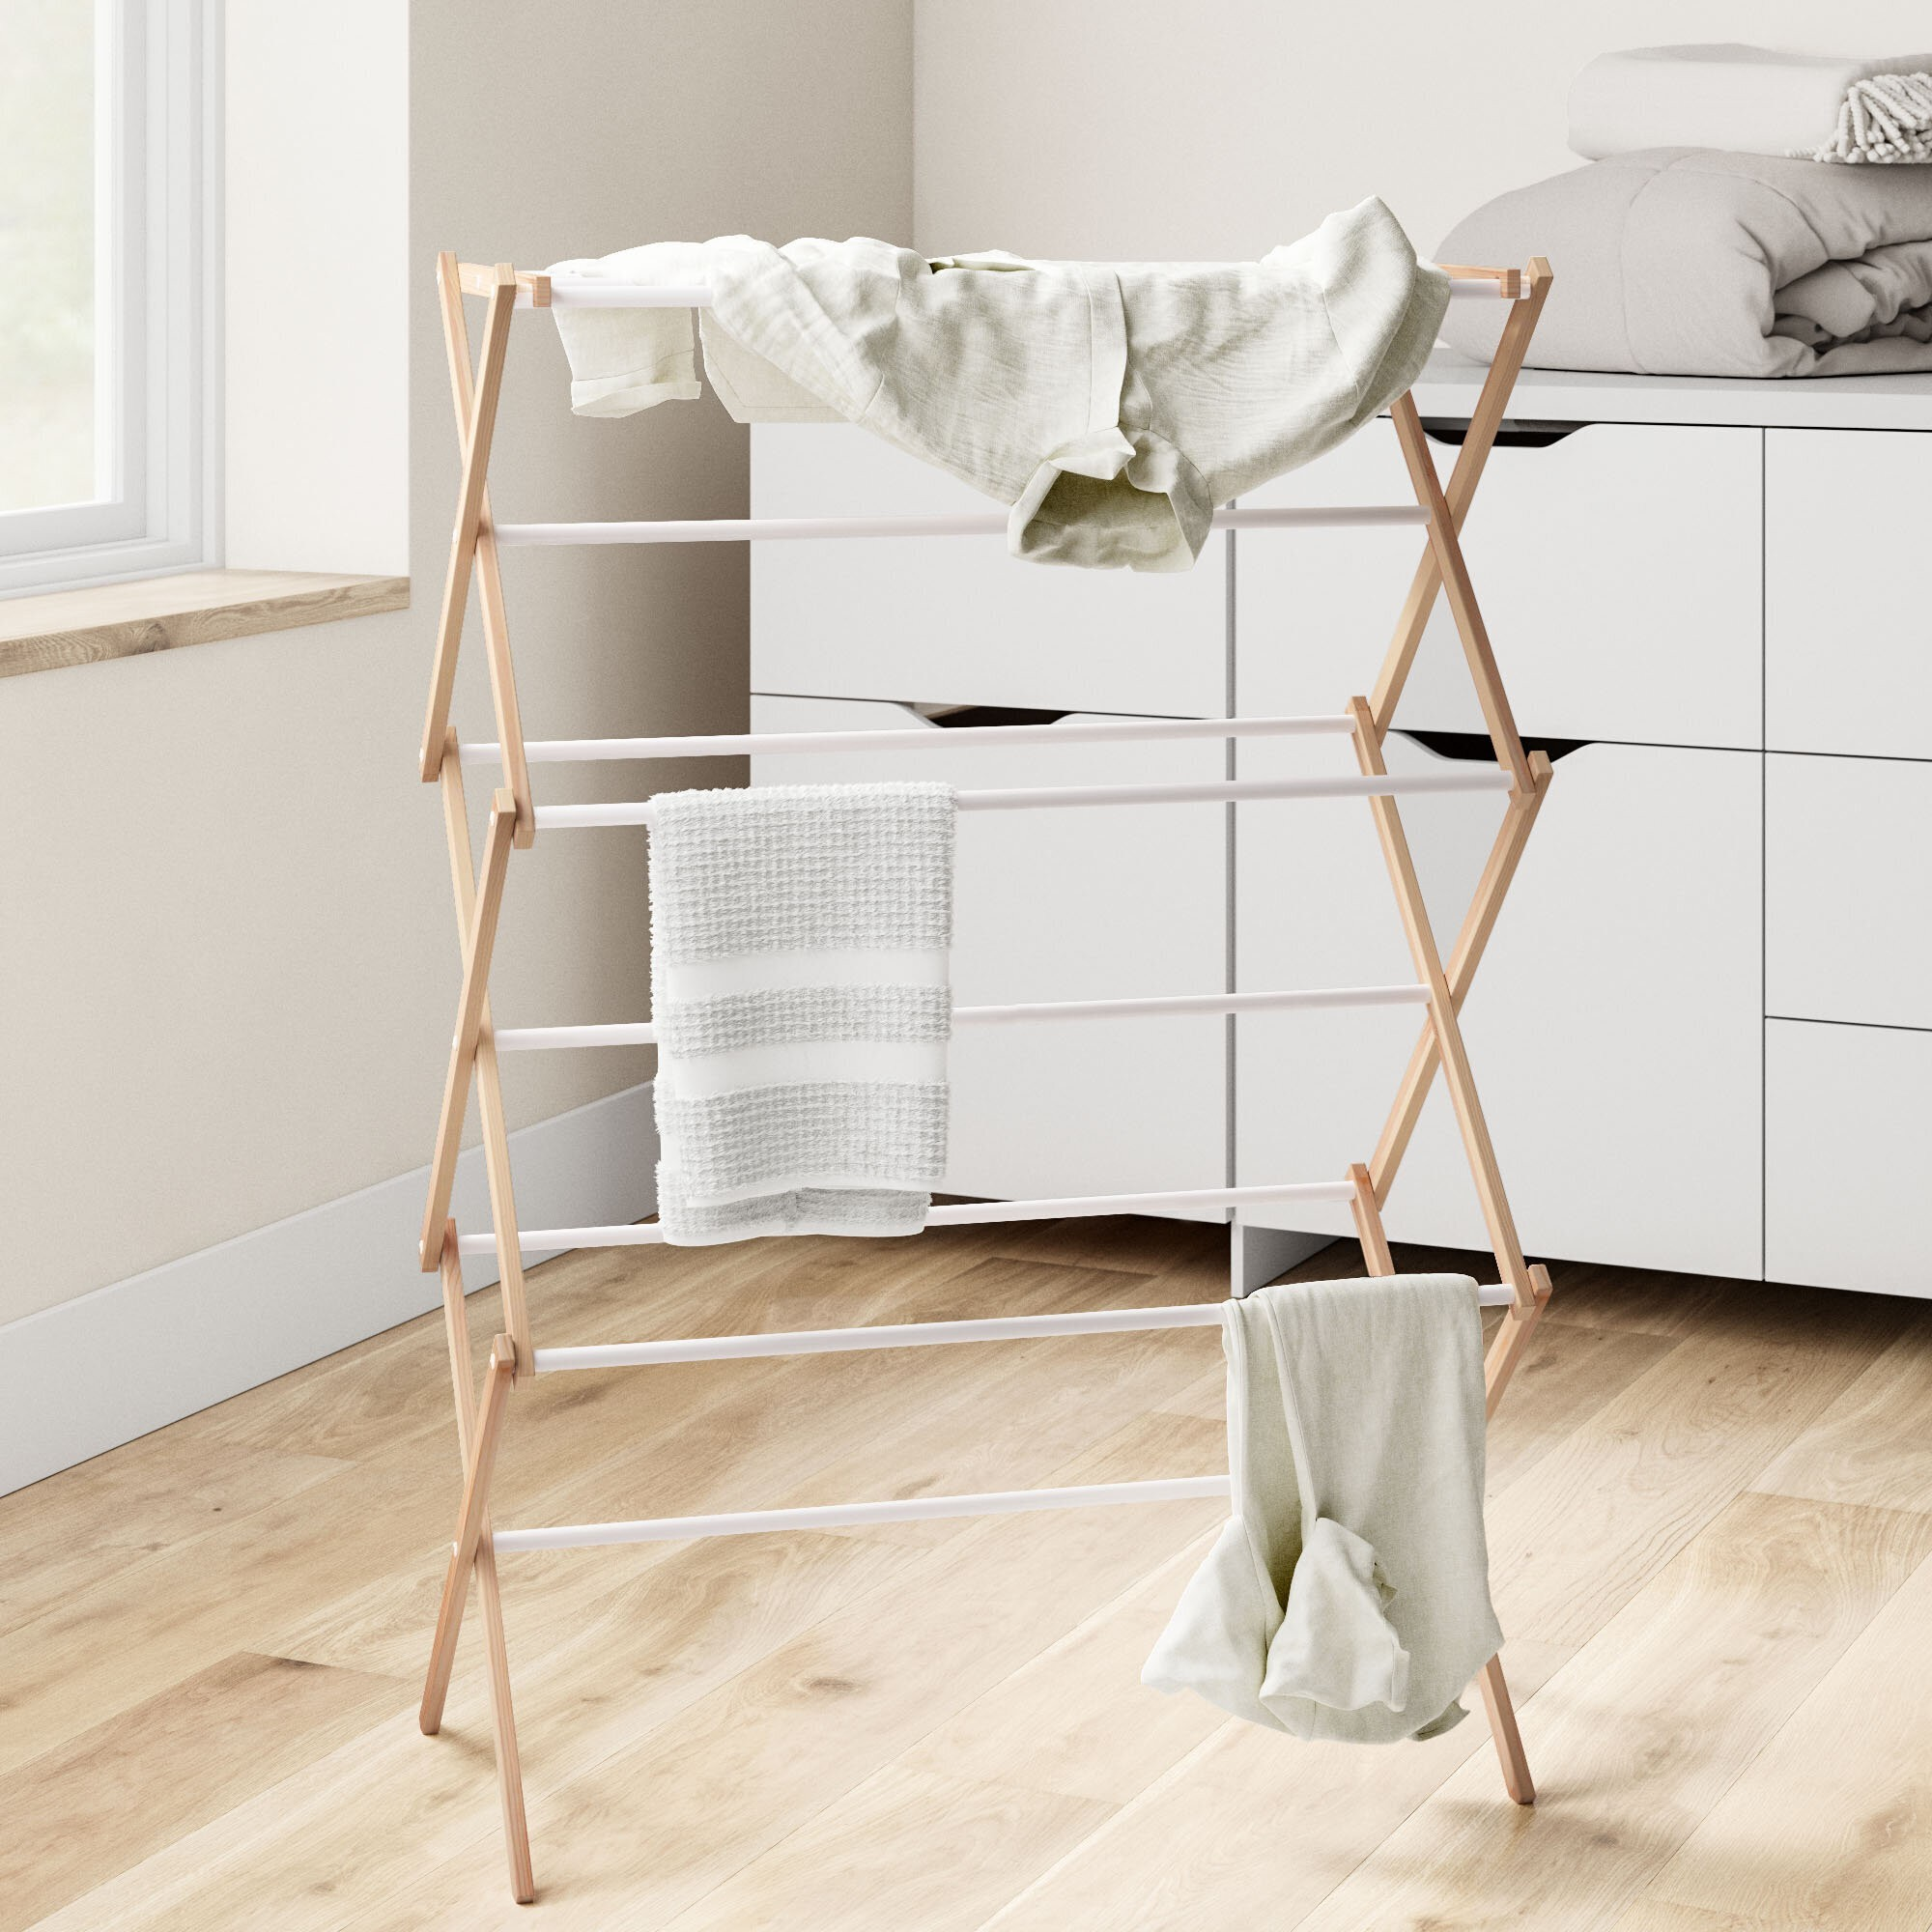 How To Choose A Drying Rack